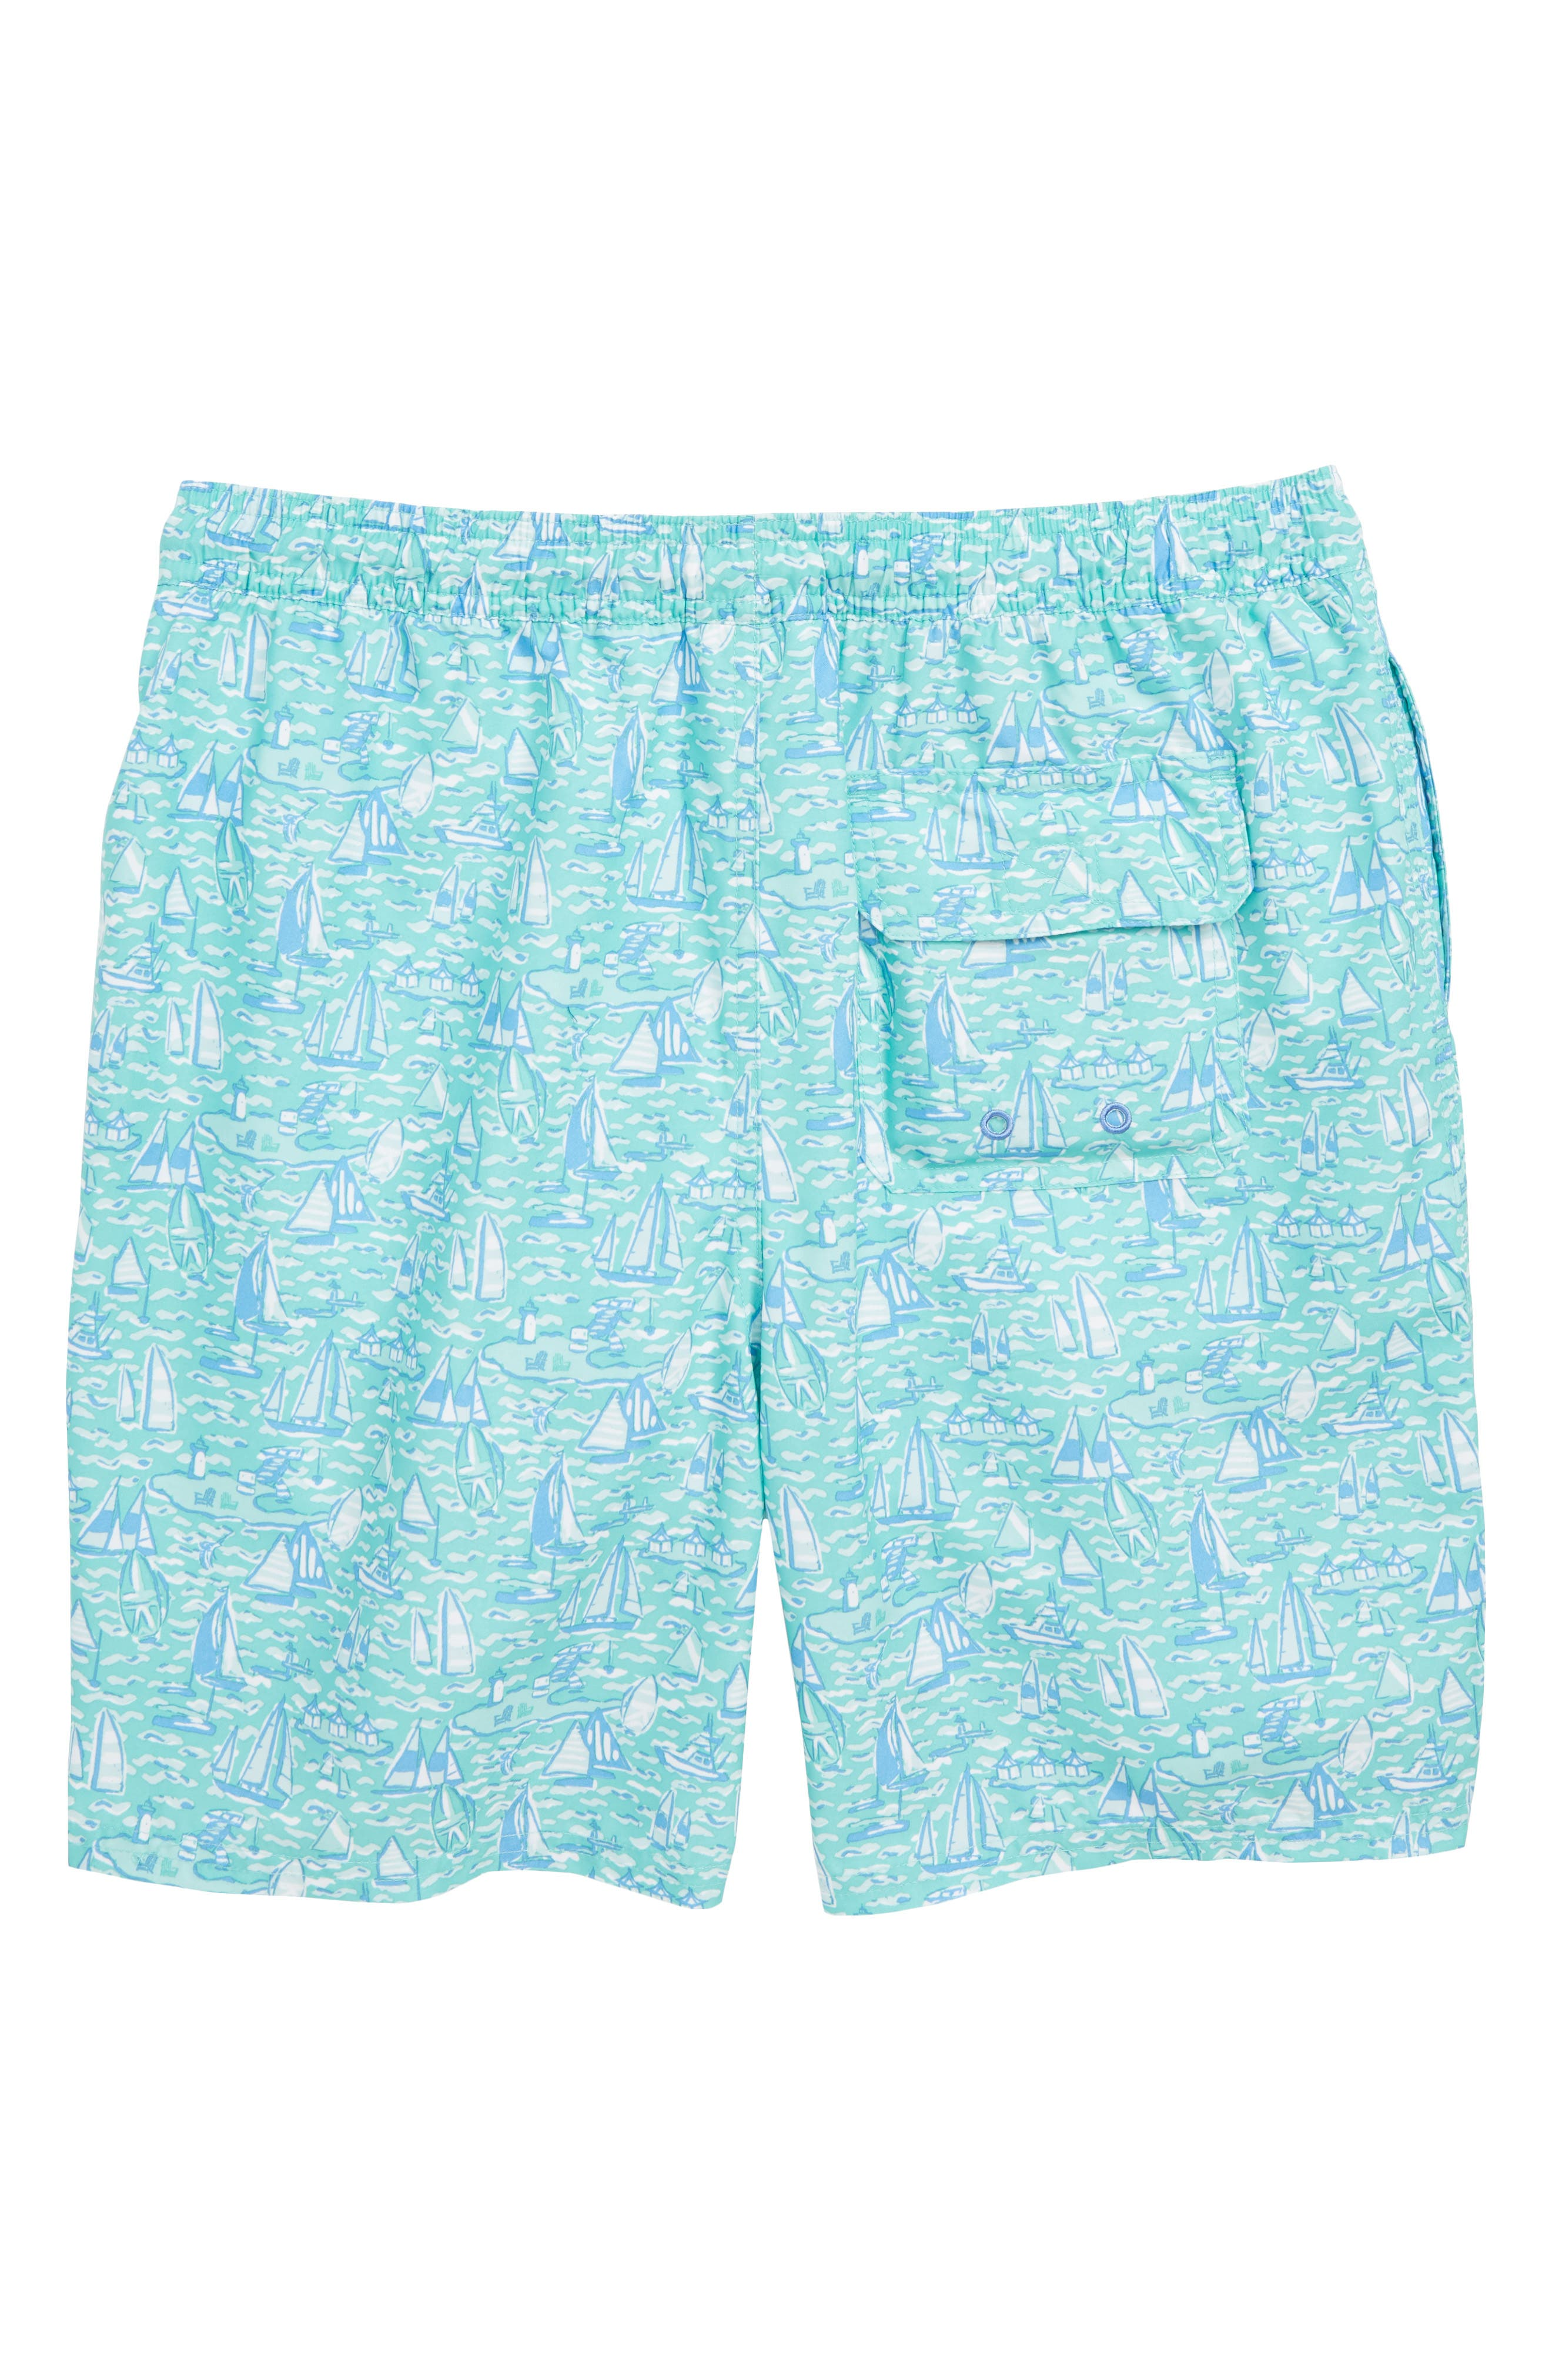 Chappy Sailing the Vineyard Swim Trunks,                             Alternate thumbnail 2, color,                             400